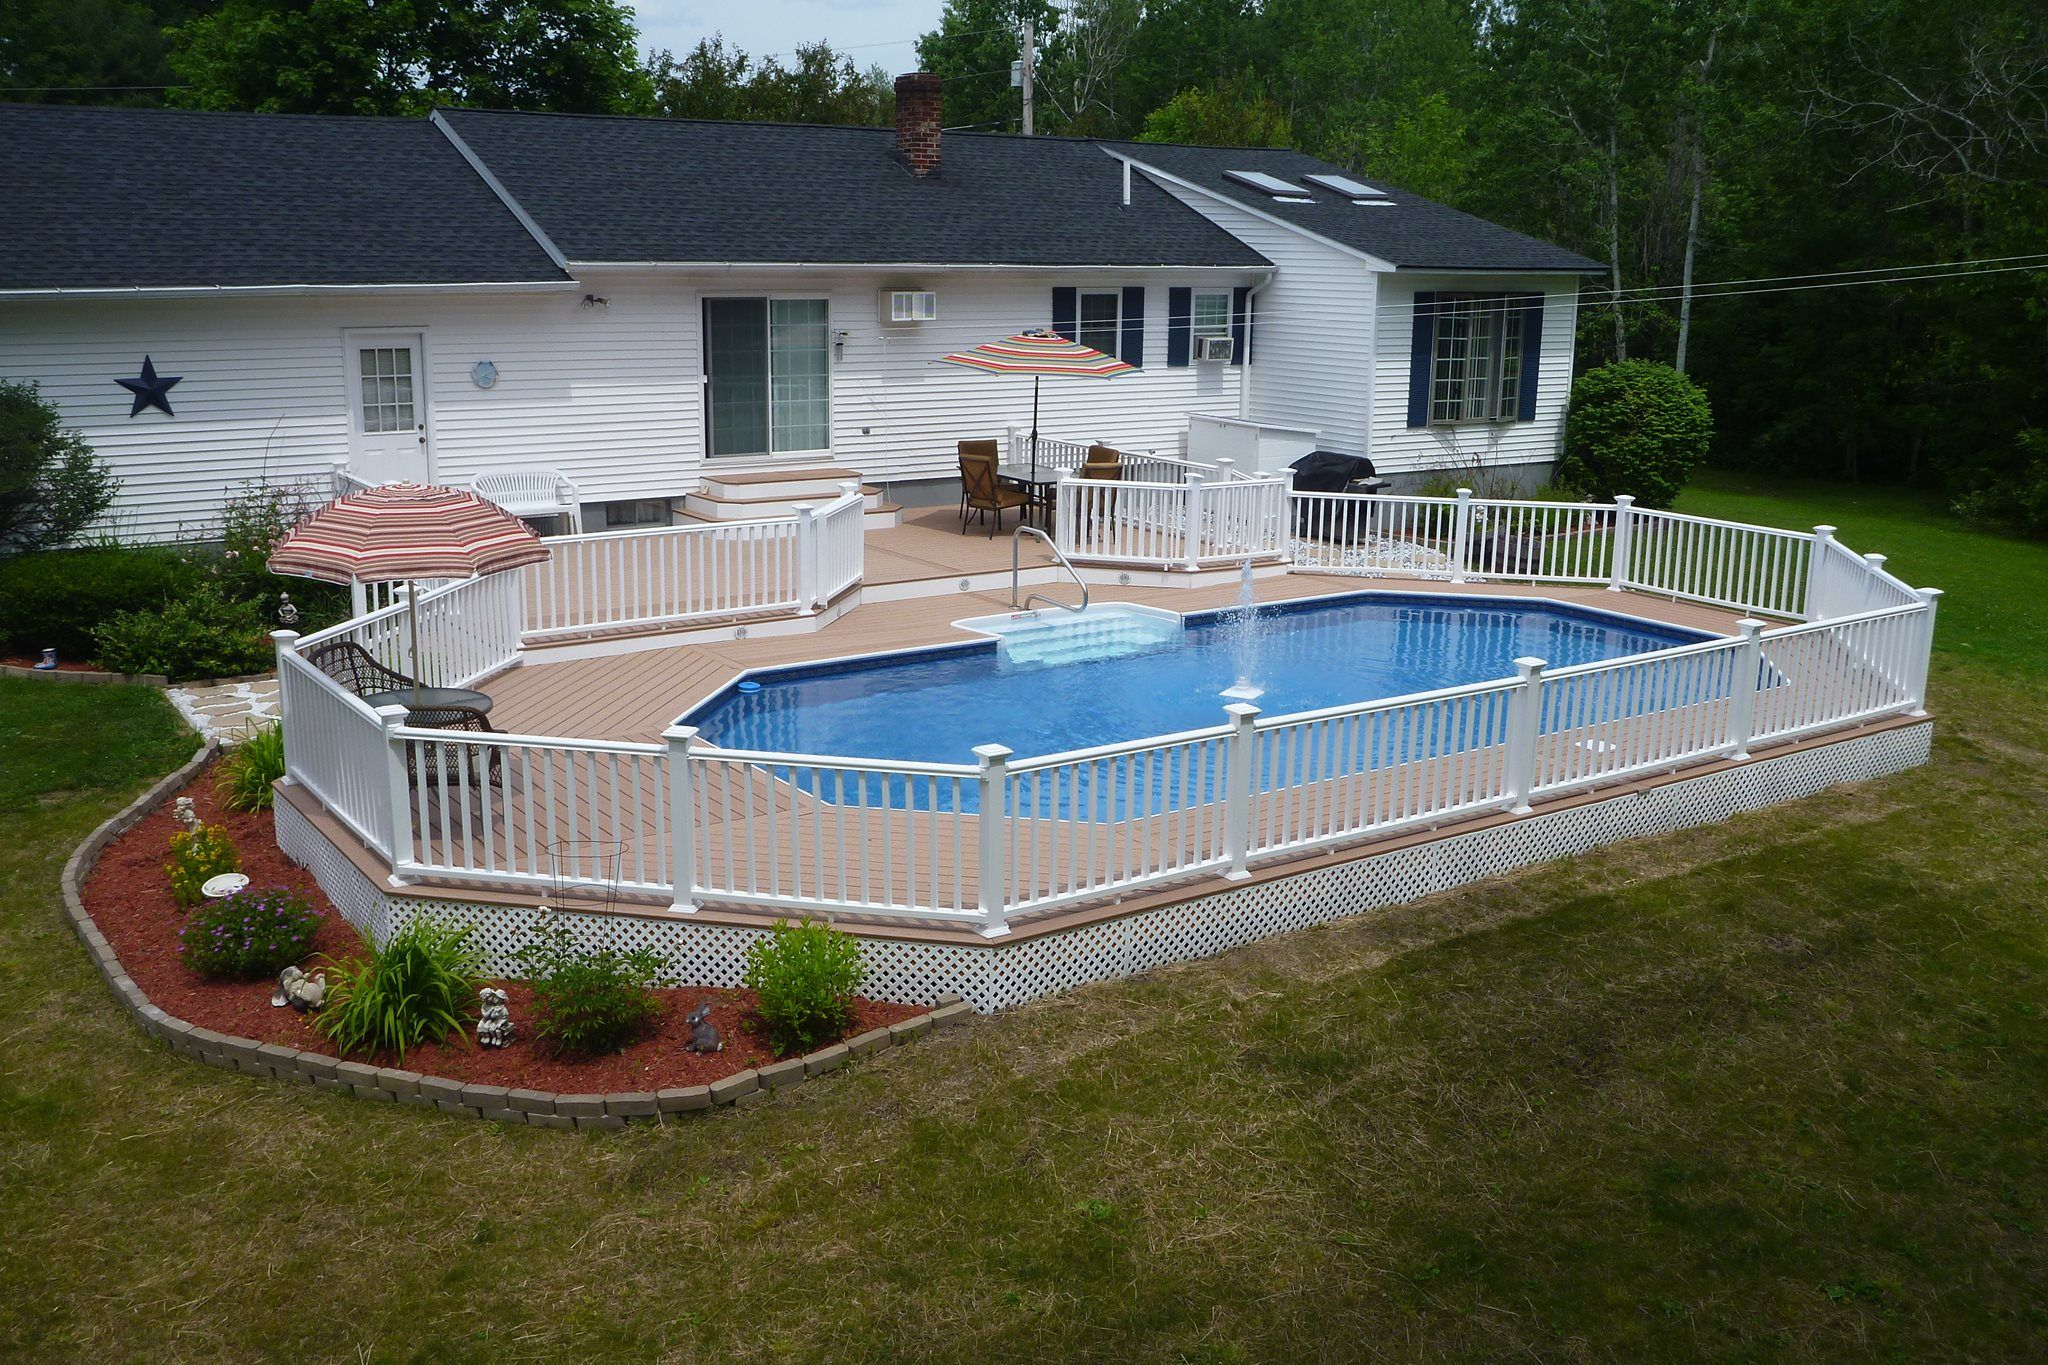 Radiant S Keystone Semi Inground Pool Is The Perfect Centerpiece